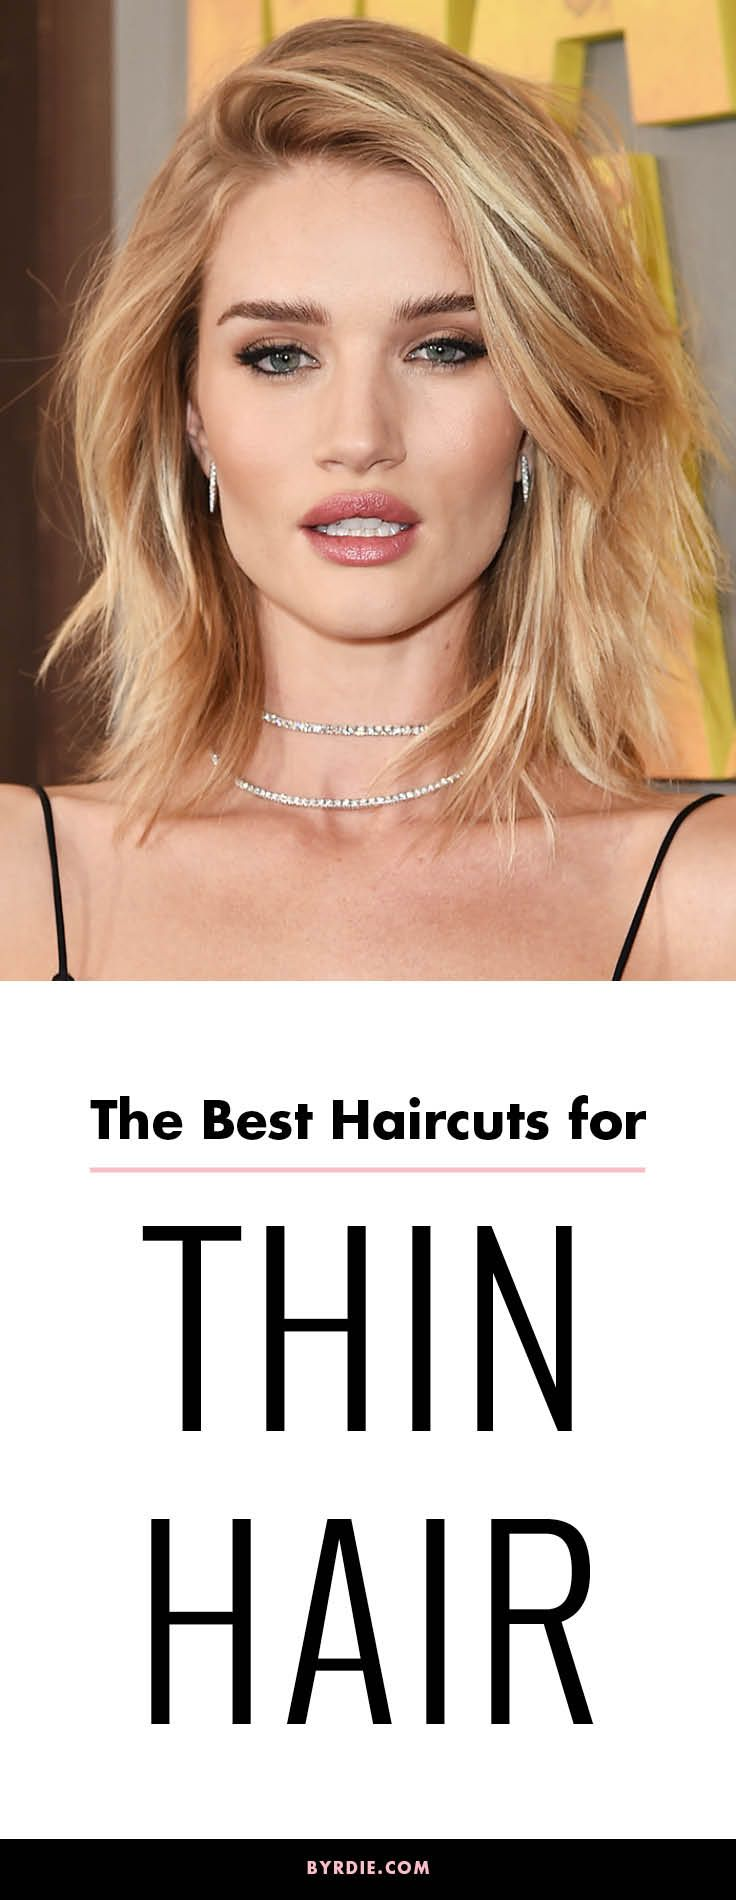 best short haircuts for thin hair 25 best ideas about thin hair on 2767 | 71fd249e724ab075b2798ad0504112bd